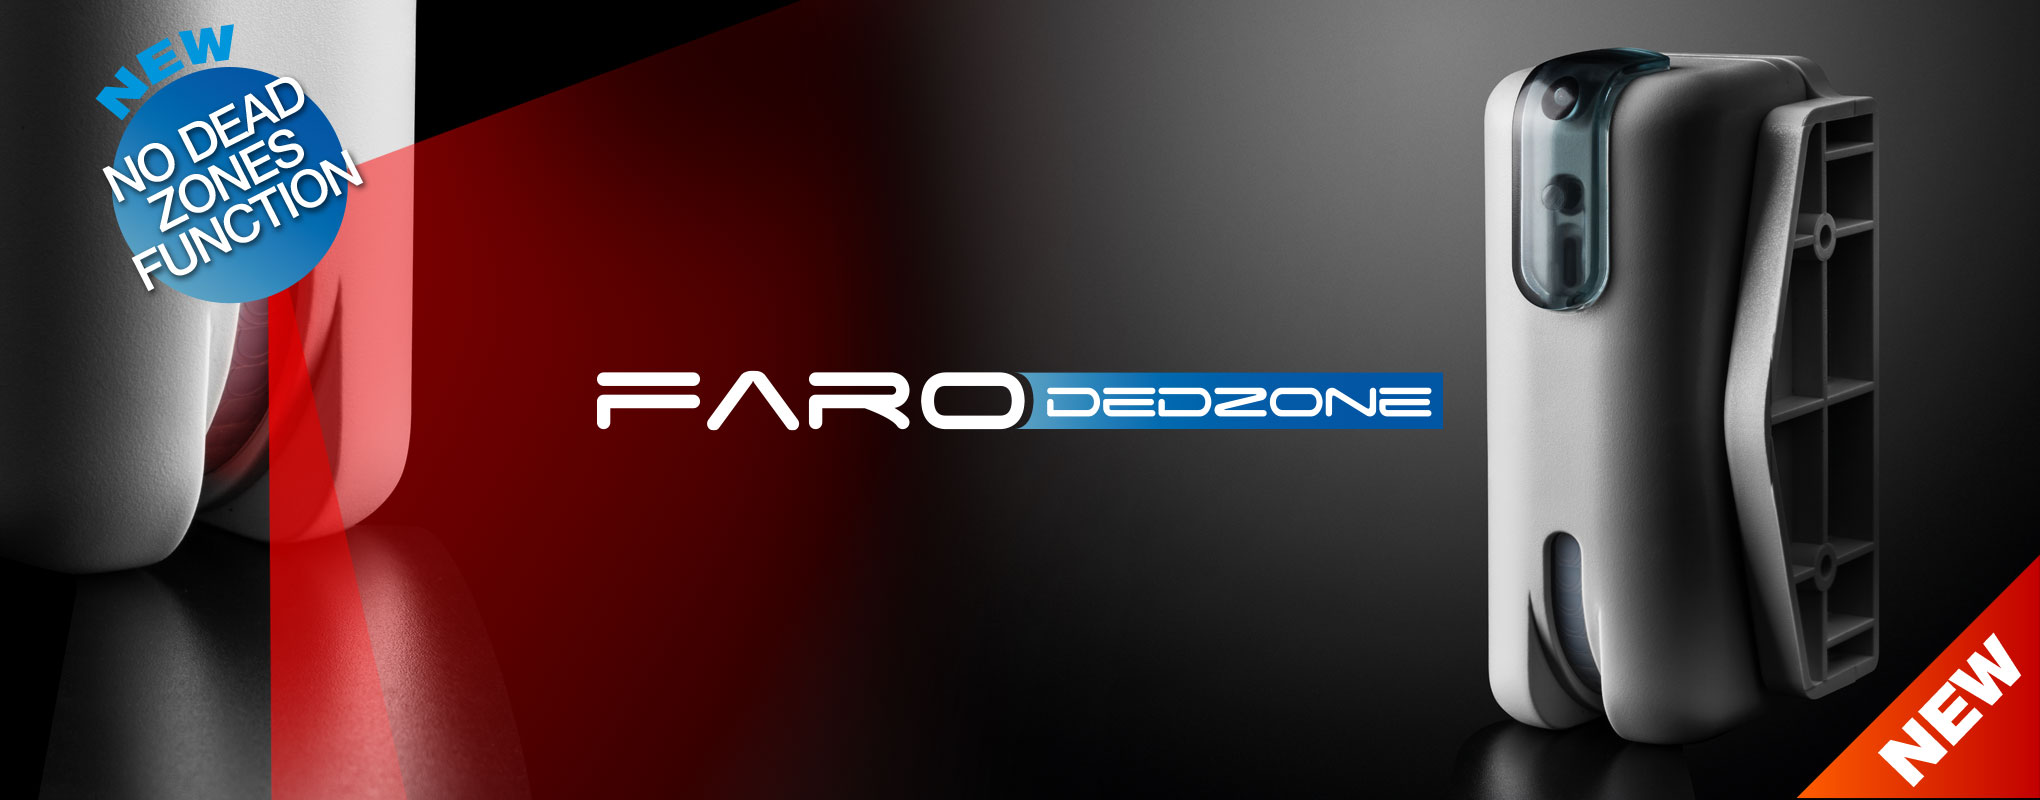 Faro DEDZONE | Curtain detector for outdoors, double technology